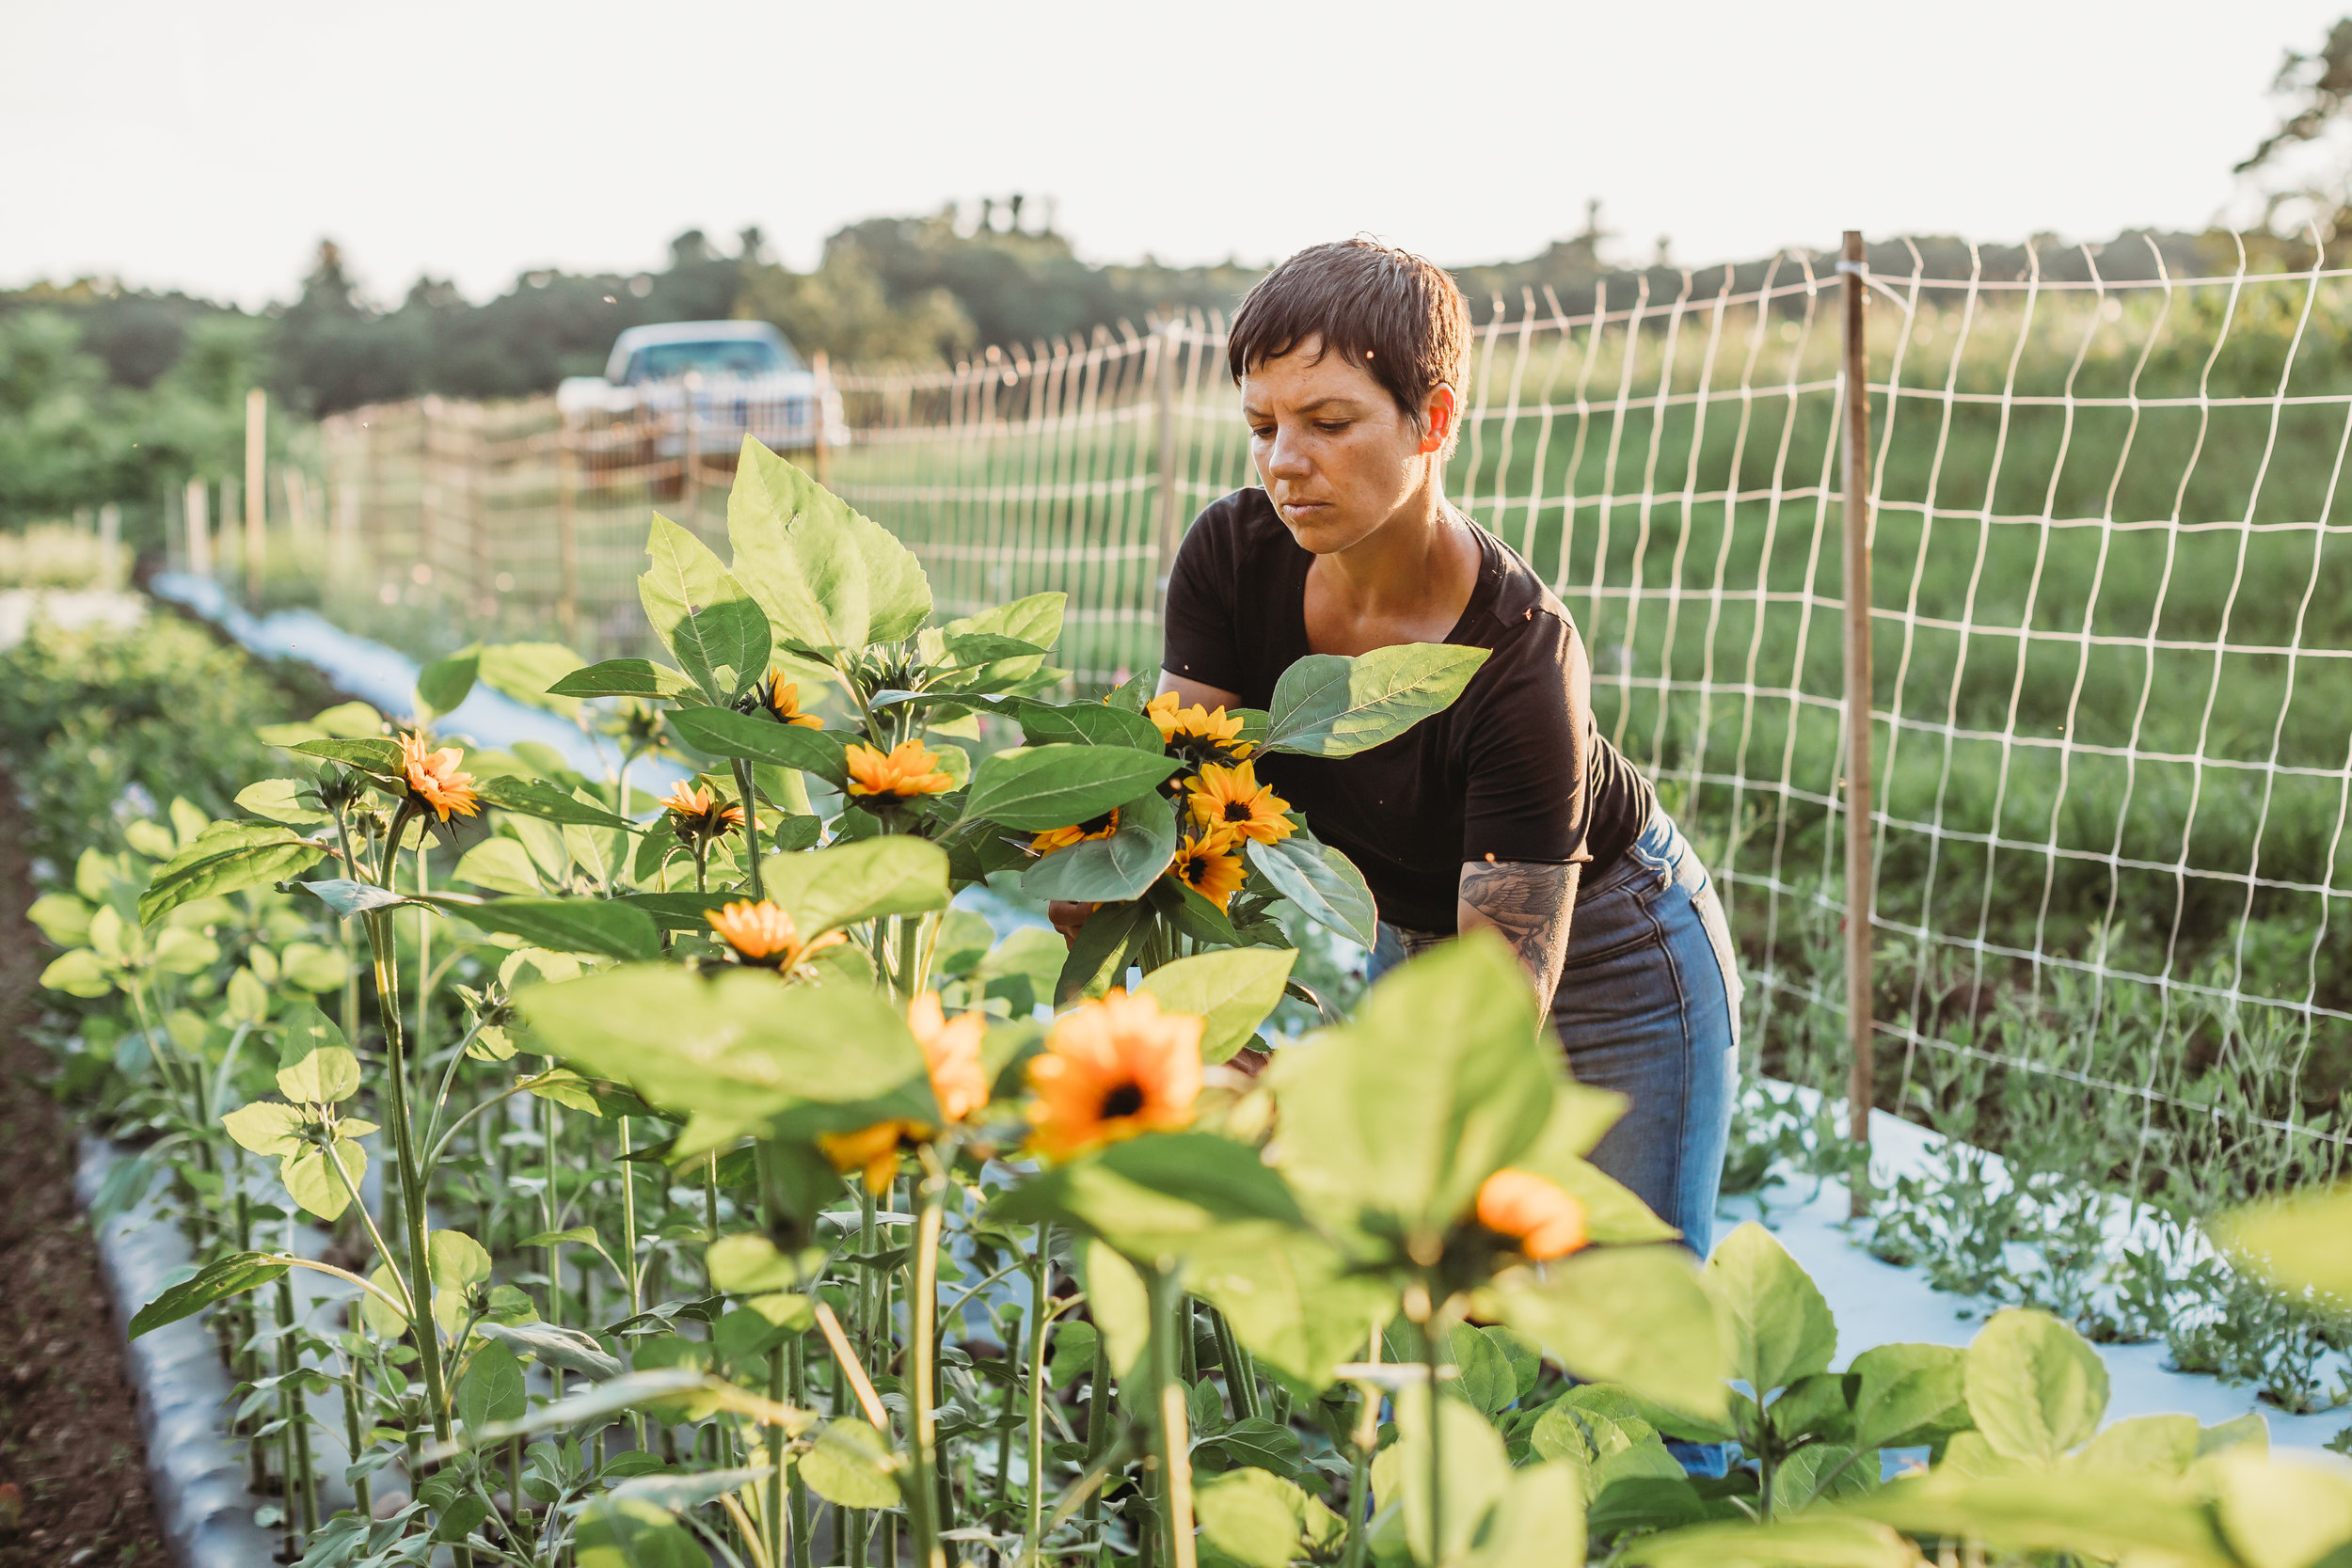 Field Edge Flowers farmer Mel Hardy working on her first crop of sunflowers in Concord, Massachusetts. Lifestyle branding photography session with Joy LeDuc Photography.